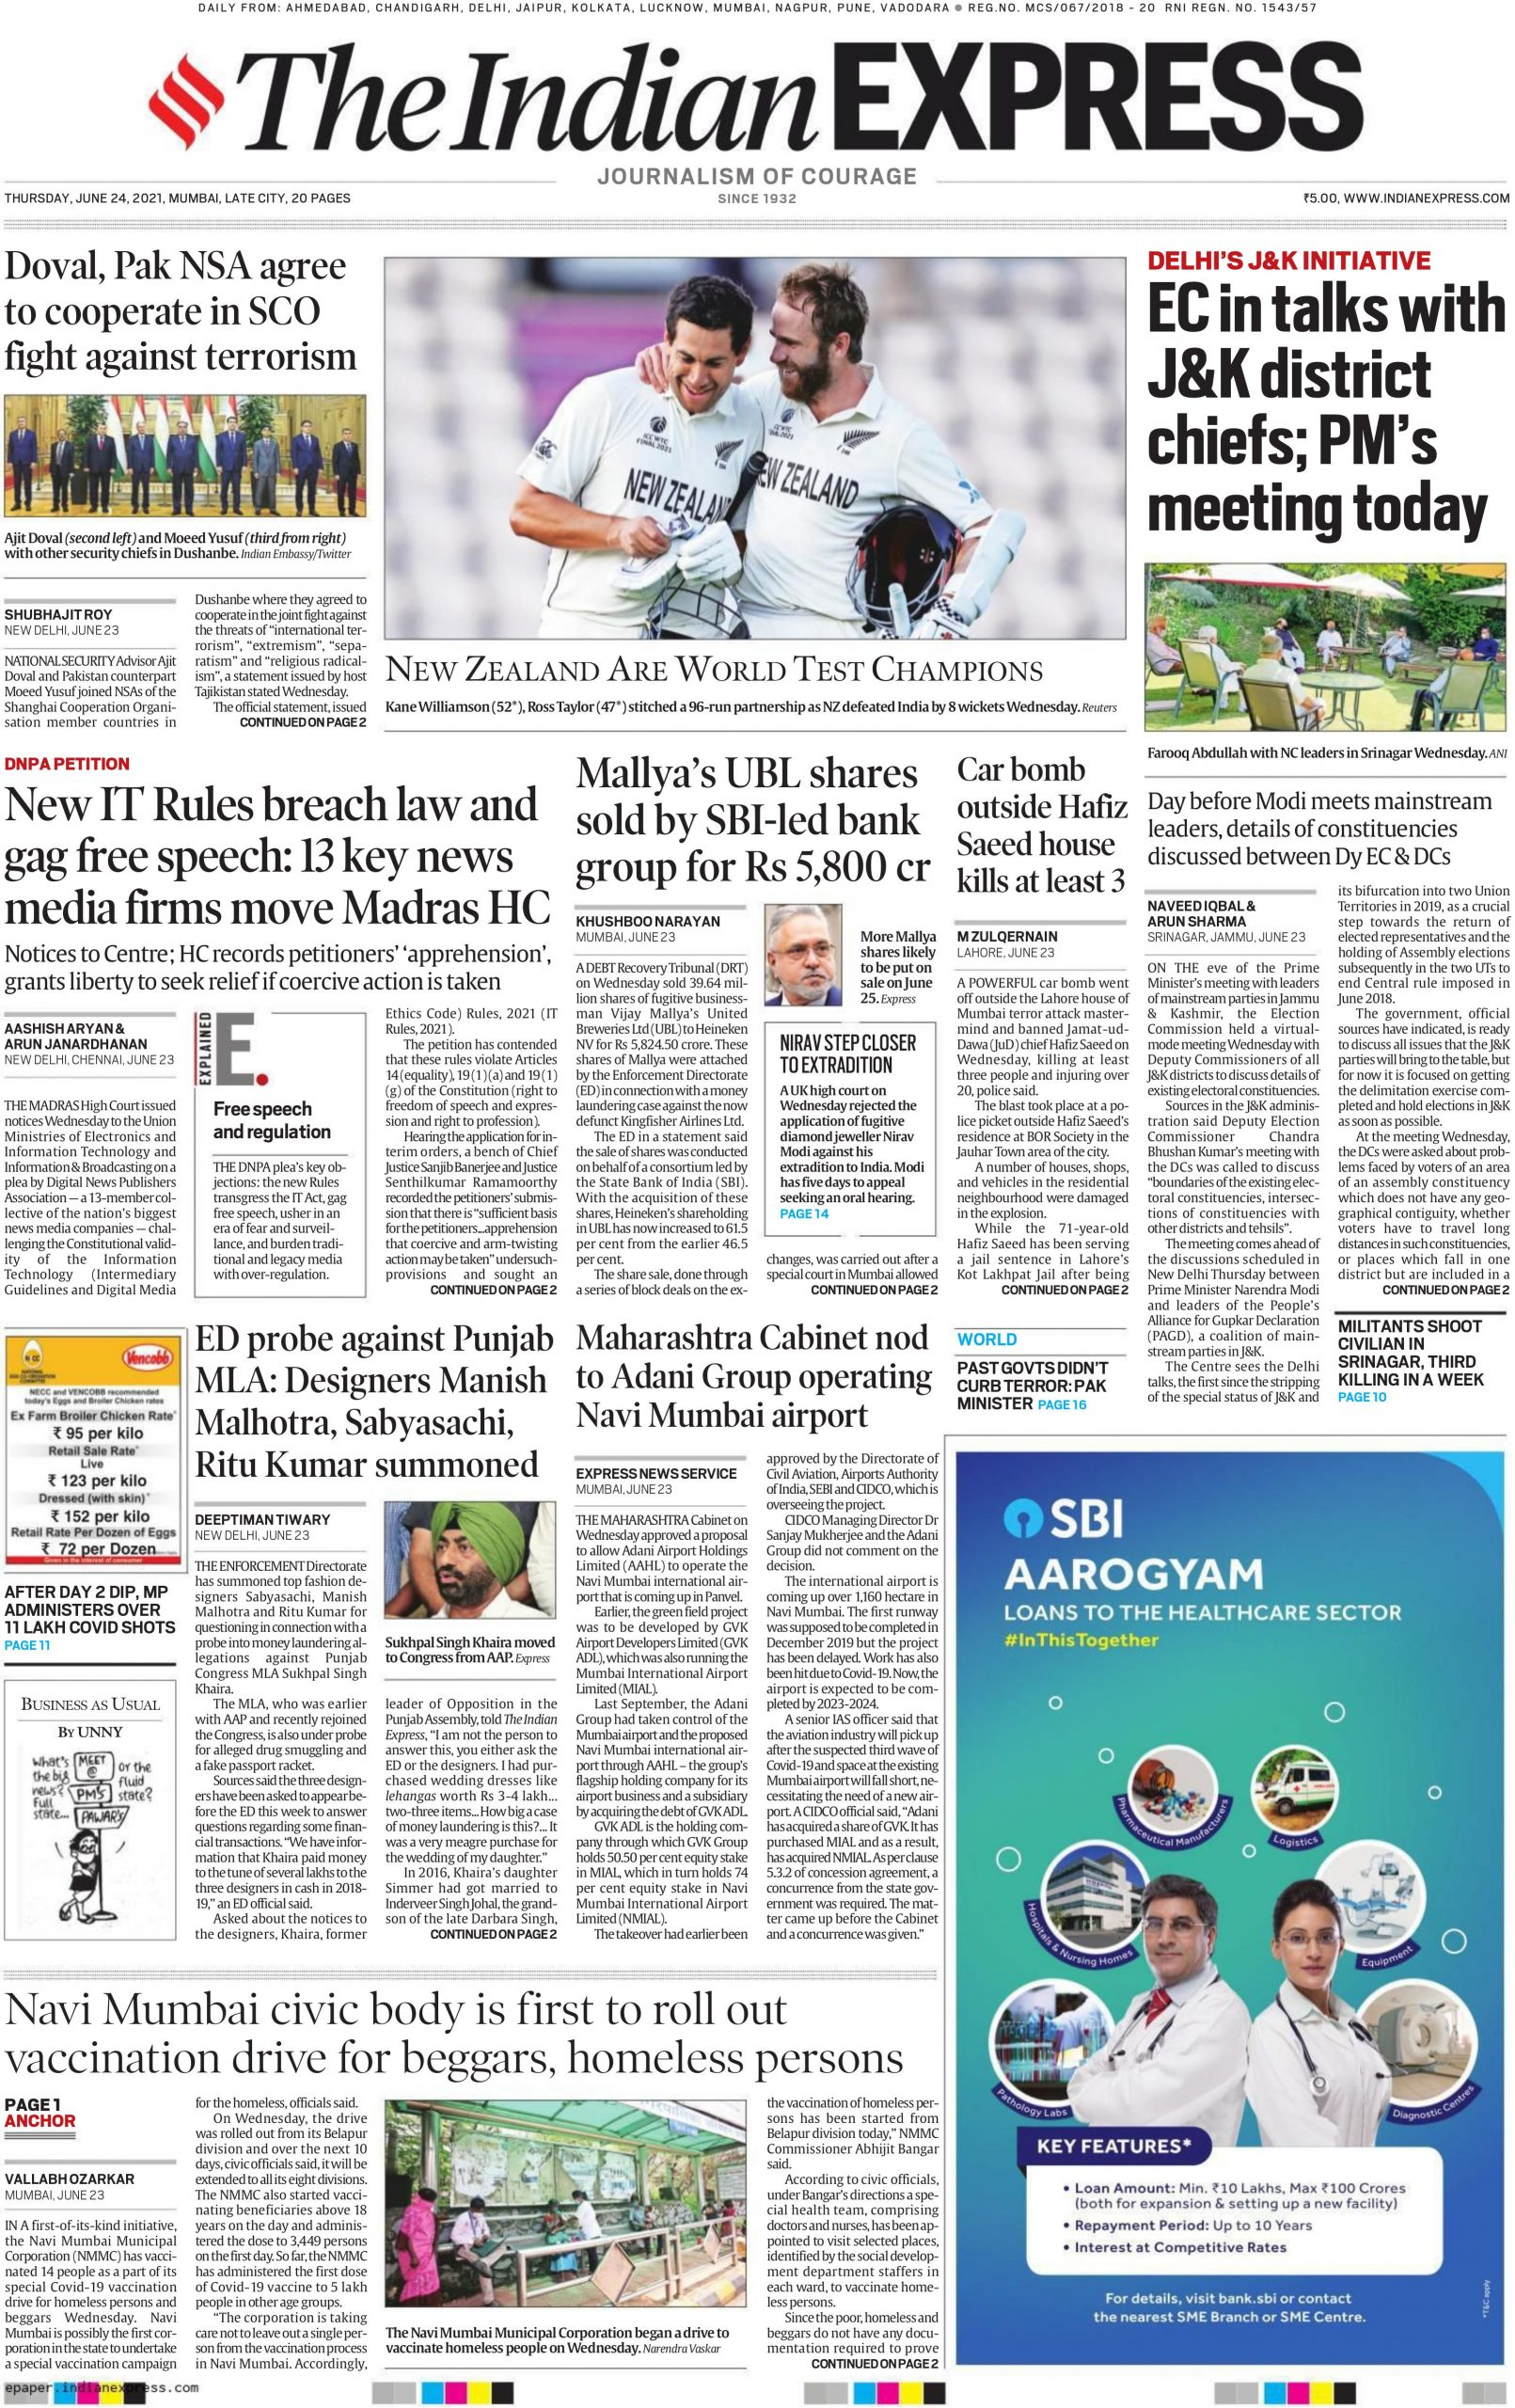 The Indian Express 24th June 2021